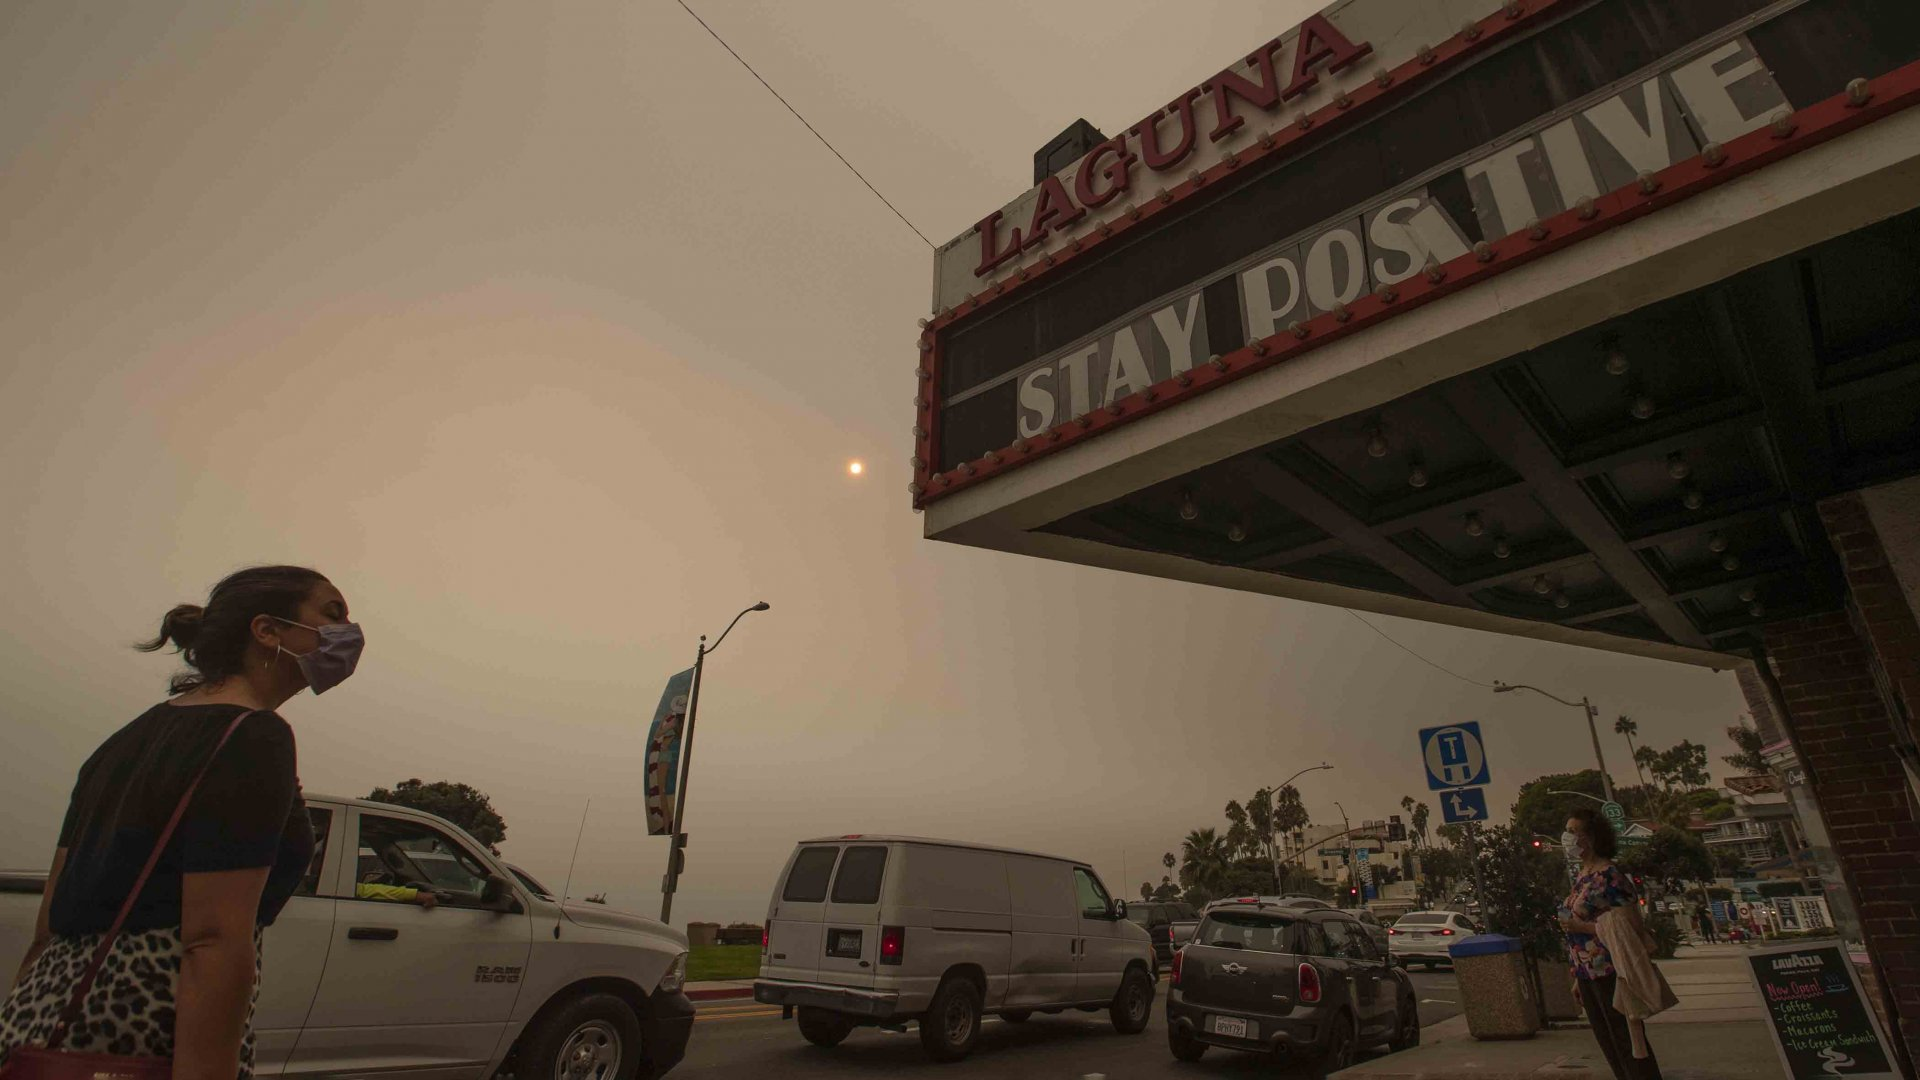 A woman walks past the The South Coast Cinemas building as the sun and sky are partially obscured with ash from Southland wildfires in Laguna Beach Thursday, Sept. 10, 2020.